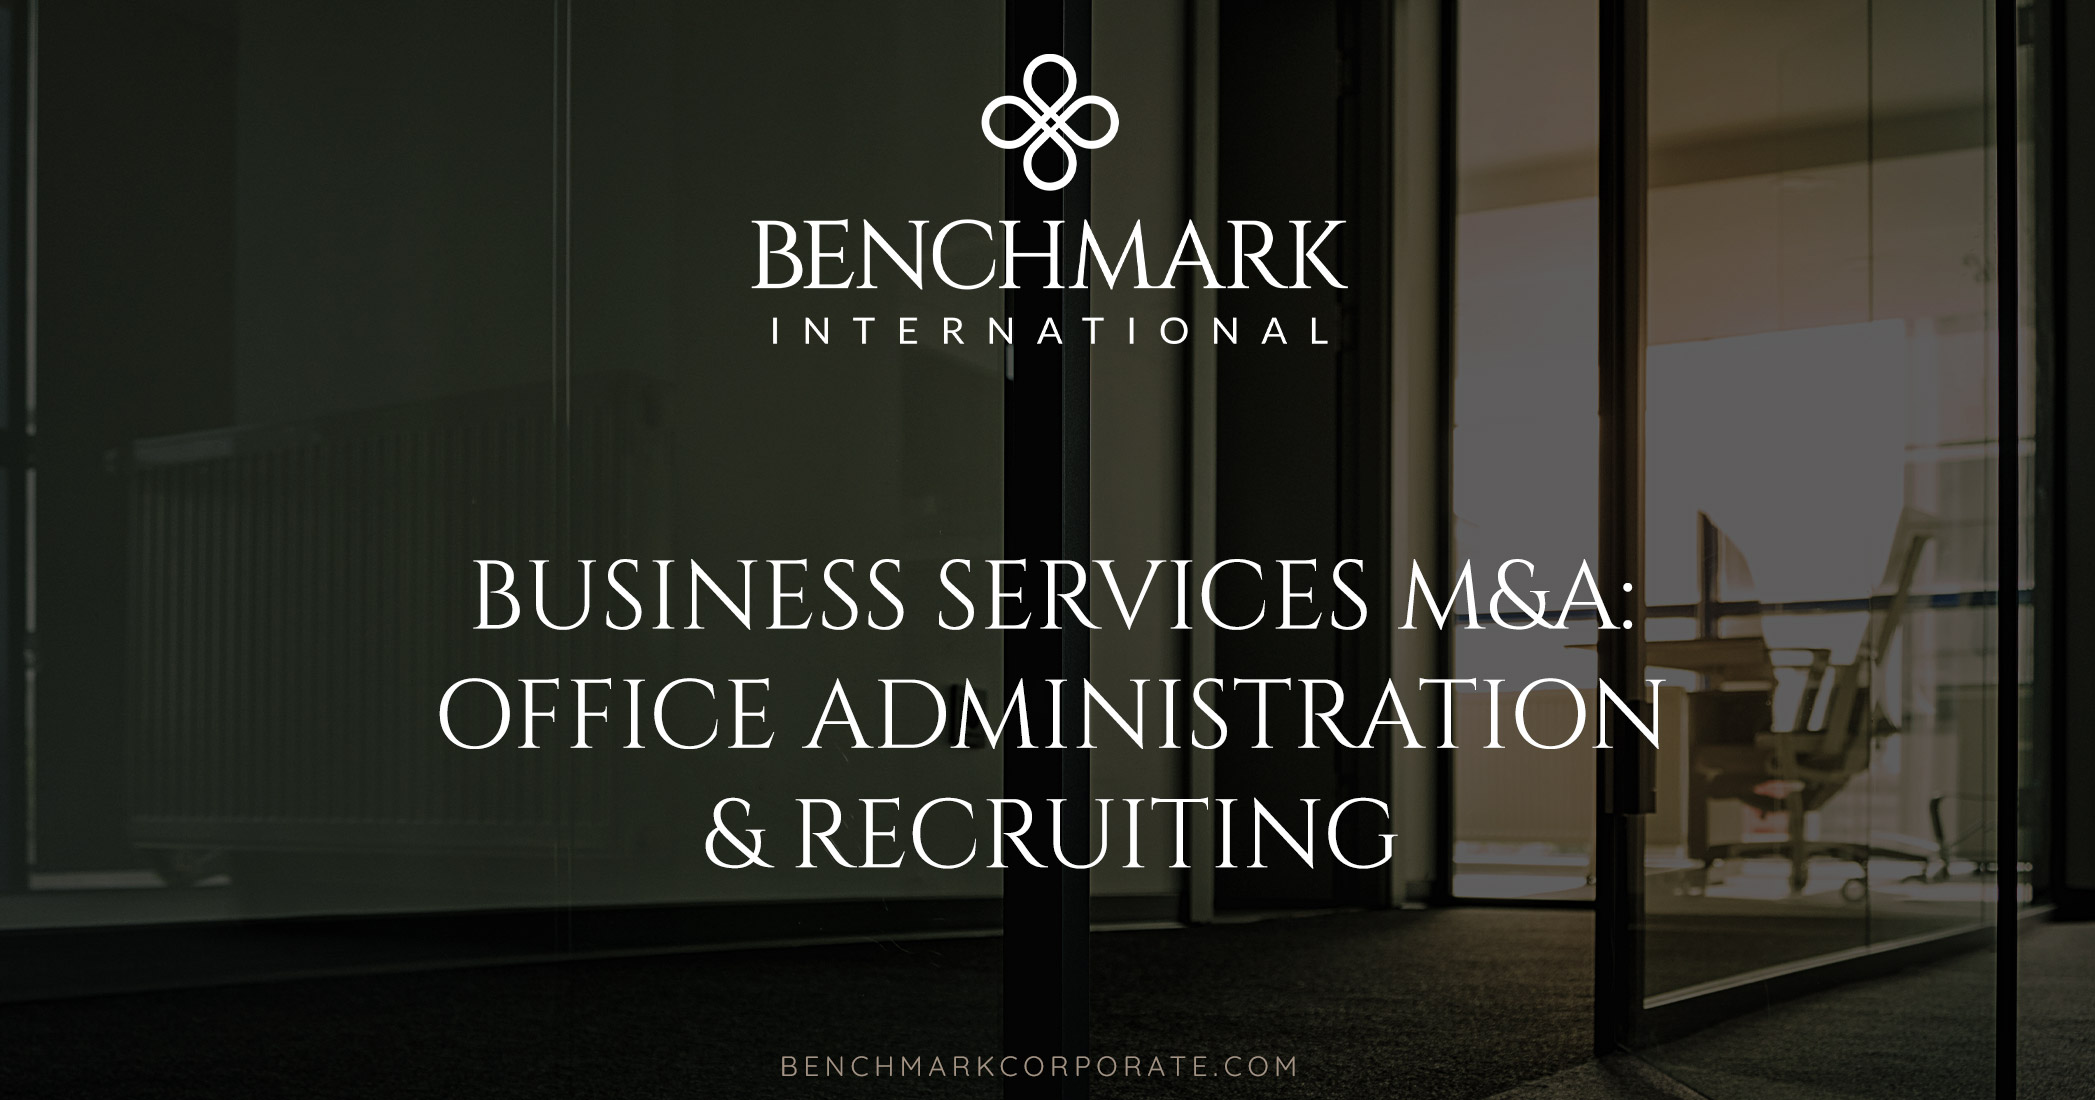 Business Services M&A: Office Administration & Recruiting